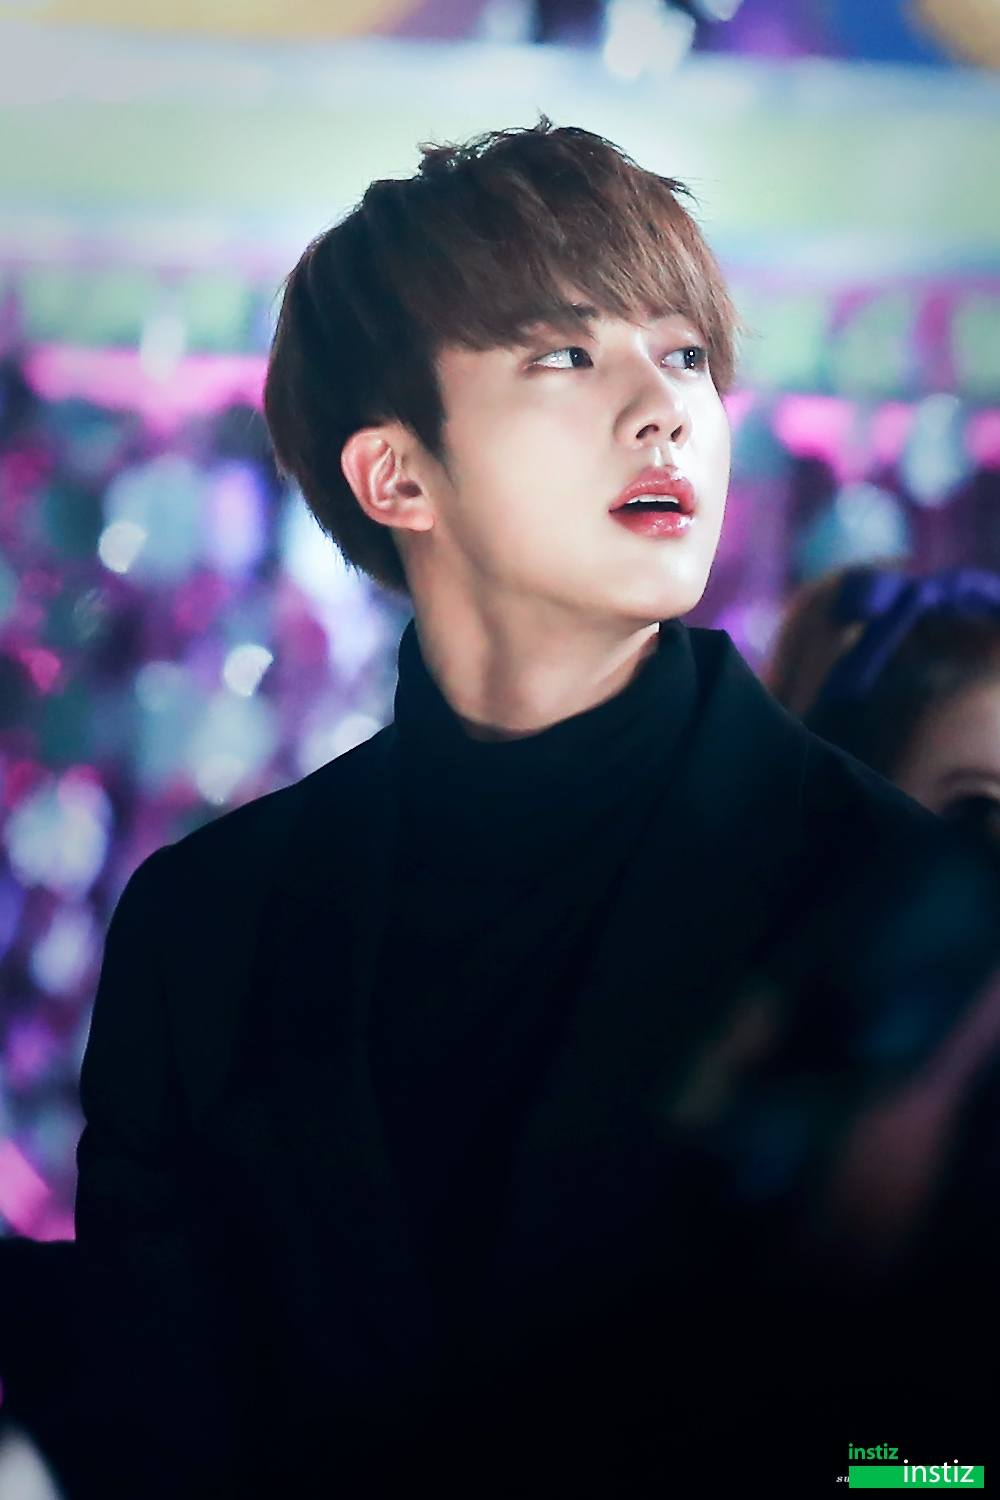 Every Time BTS Jin Has Gone Viral For Being Just Too Damn Handsome ➜ Read more: https://t.co/wXCUV6afkV https://t.co/thboxHCXWA